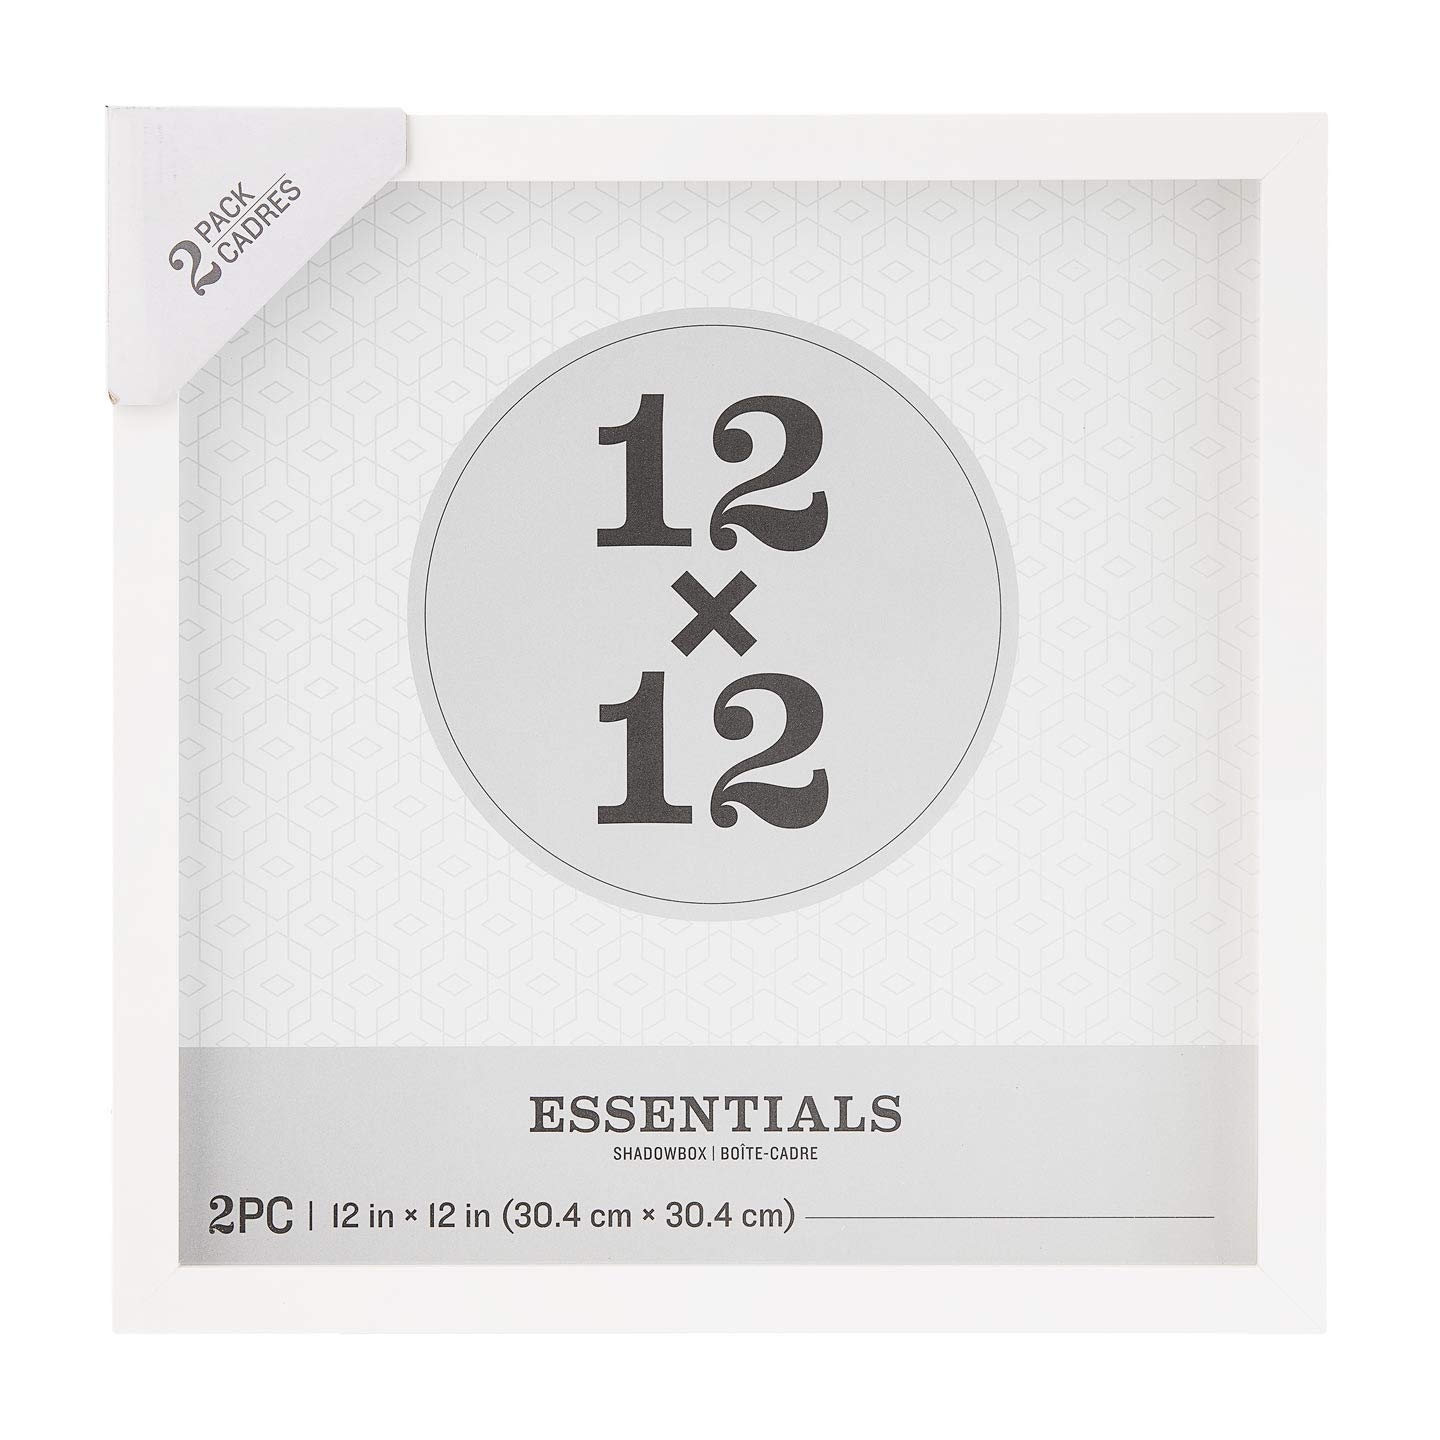 Darice Essentials White 12 x 12 inches, 2 Pieces Shadow Box, by Darice